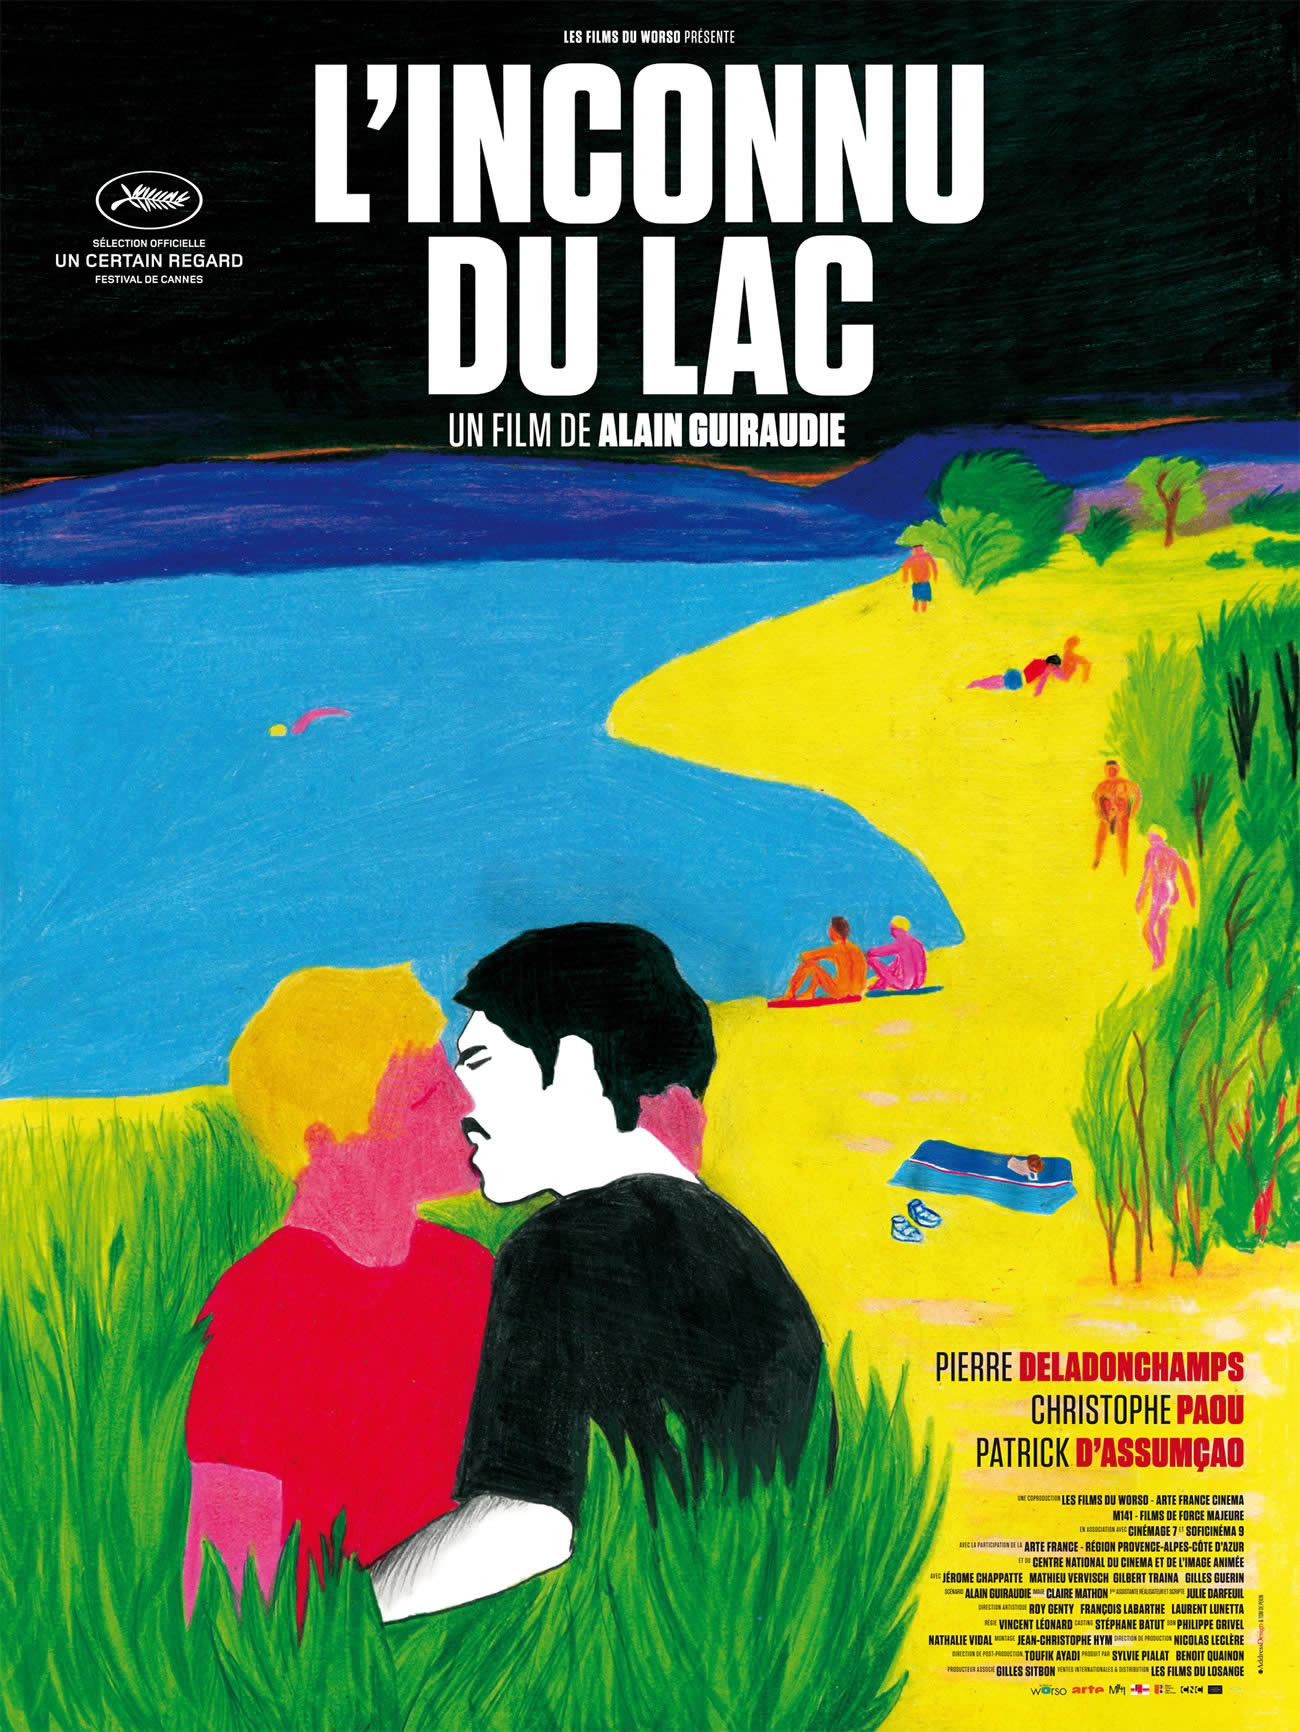 the stranger by the lake, painting poster